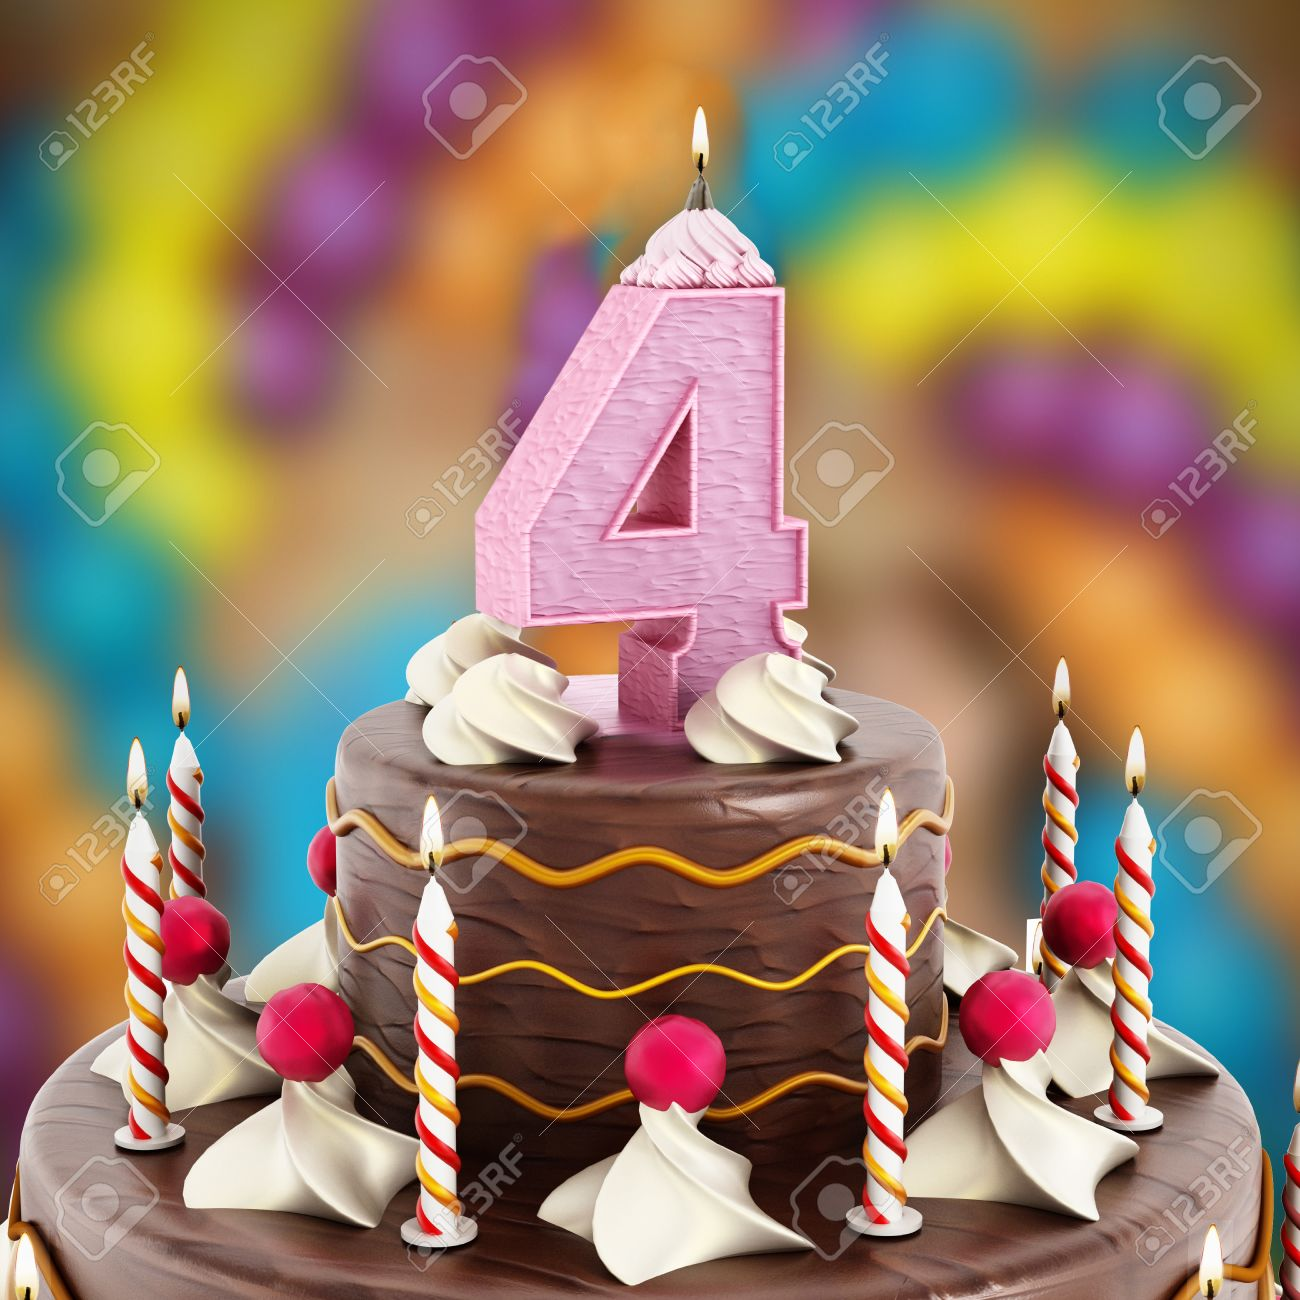 Birthday Cake With Number 4 Lit Candle Stock Photo